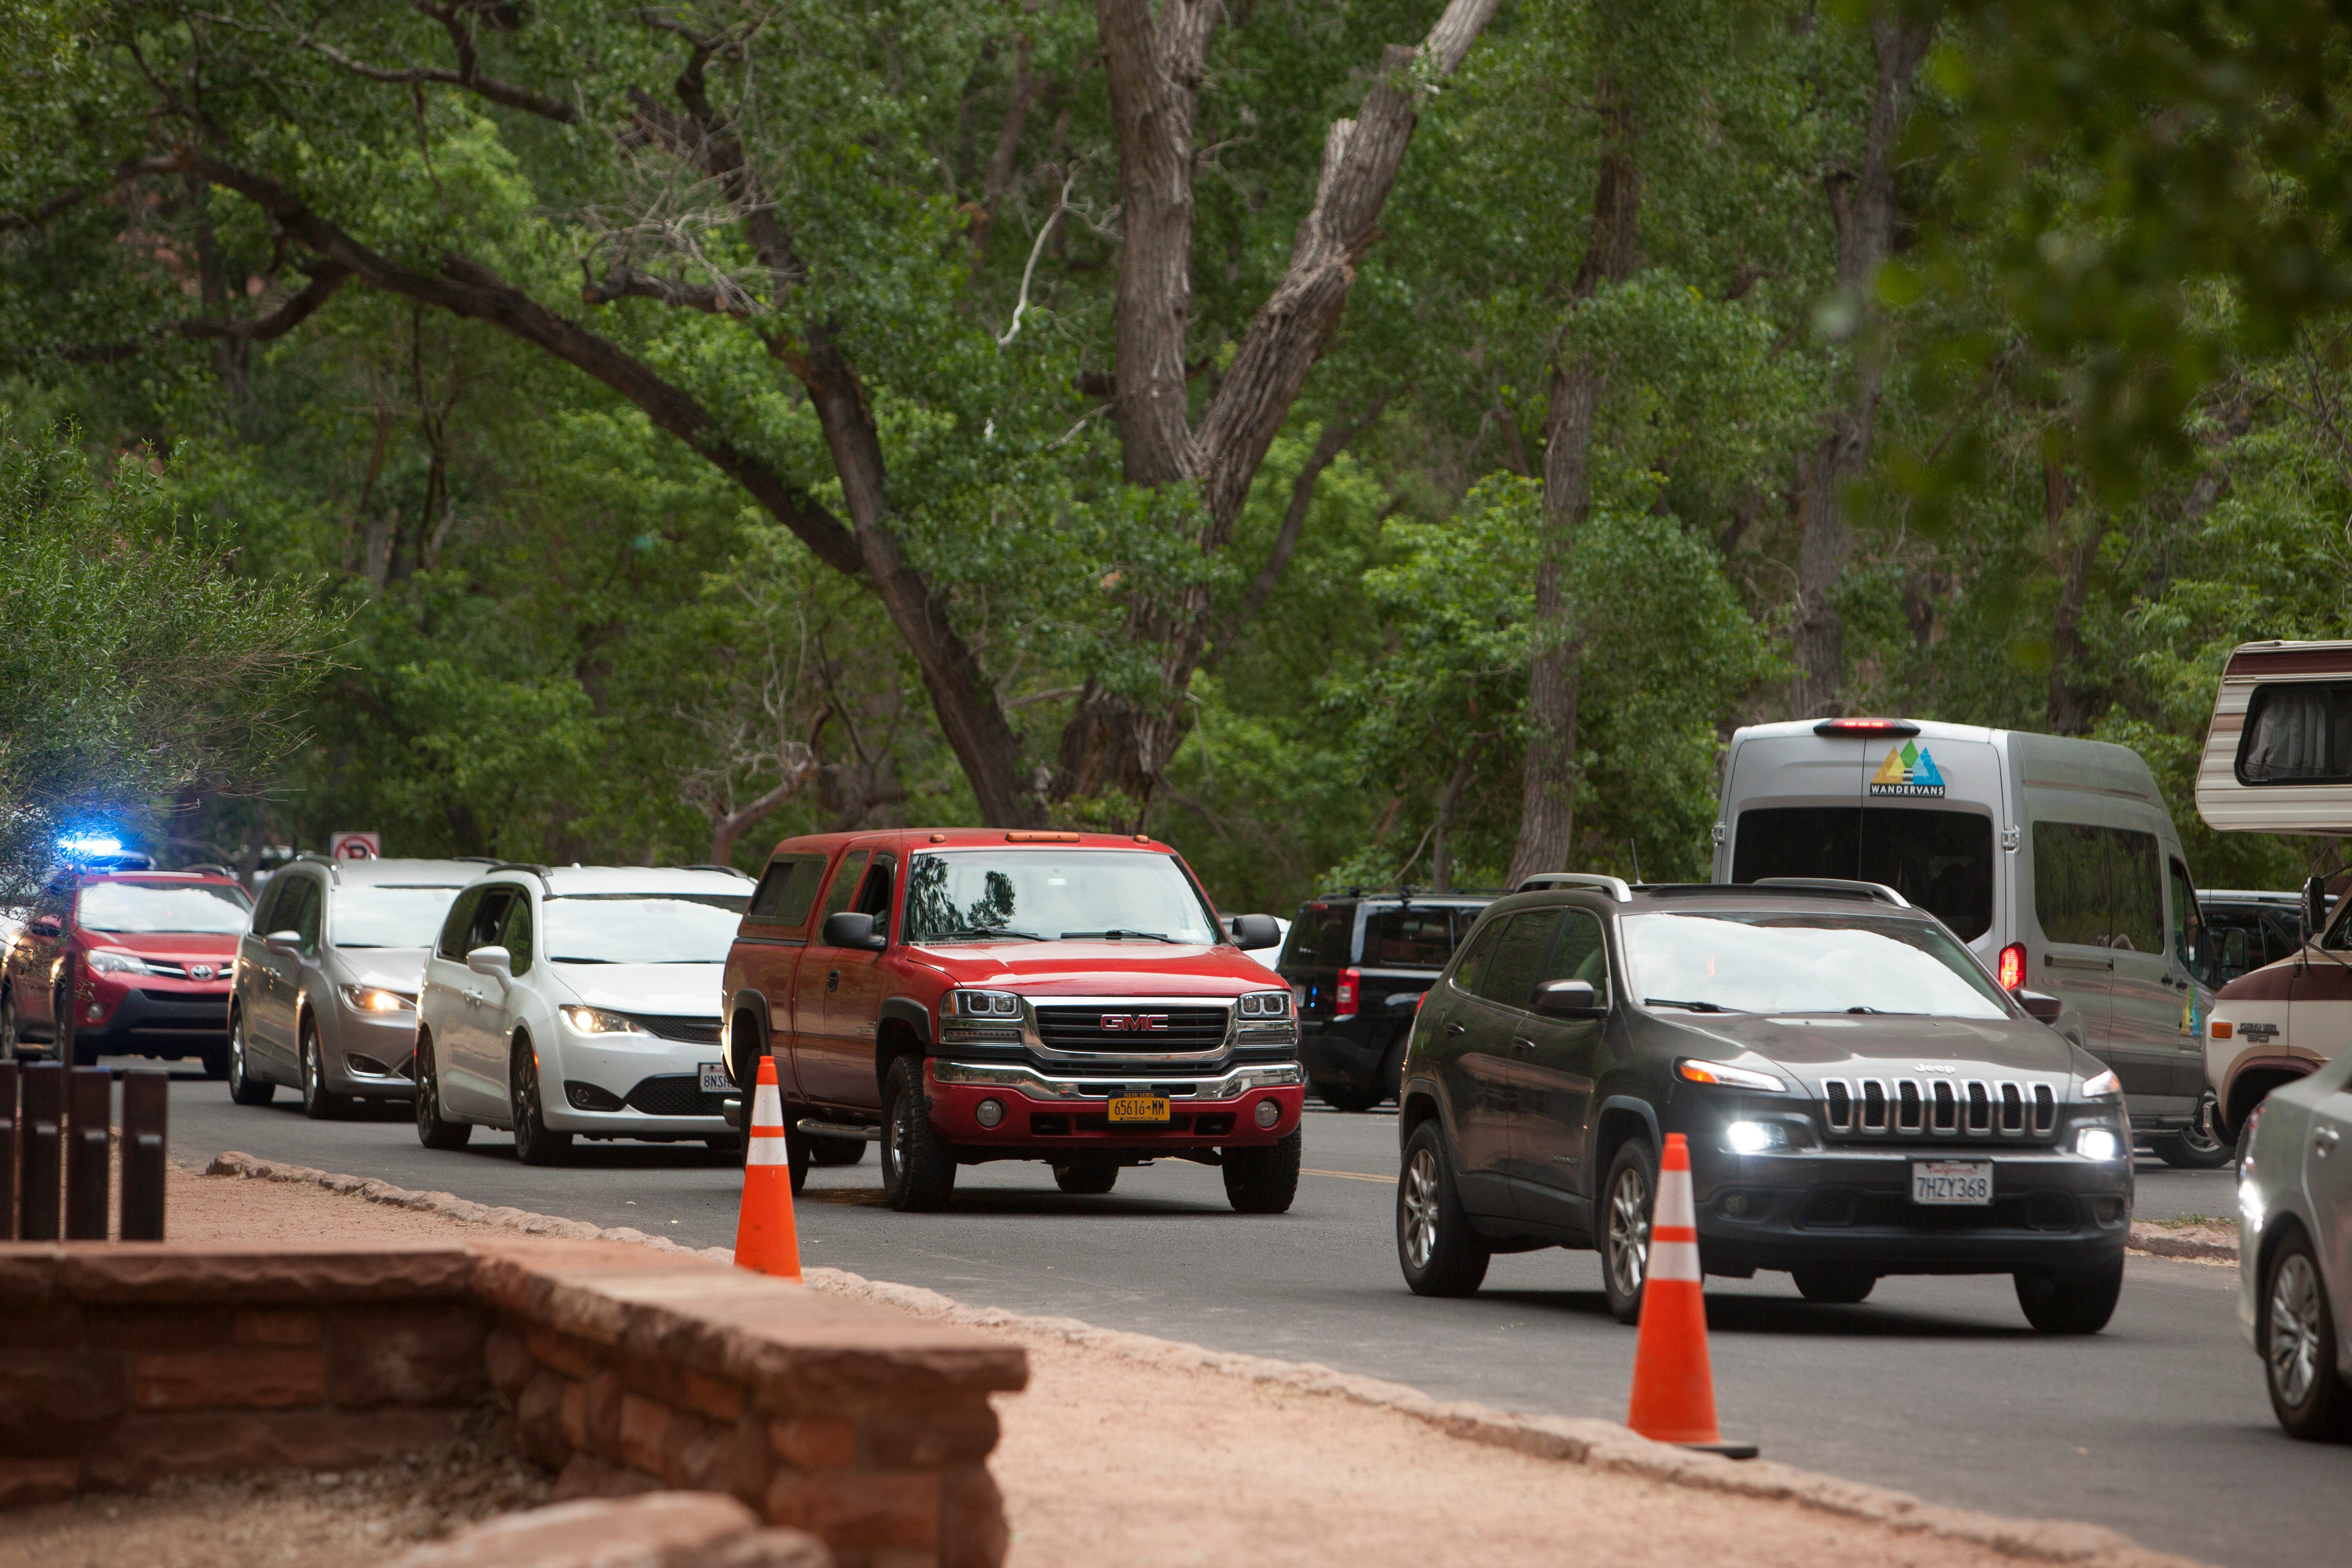 Hundreds of cars line up in Zion National Park every morning in hopes to get a parking spot at one of the popular trailheads.